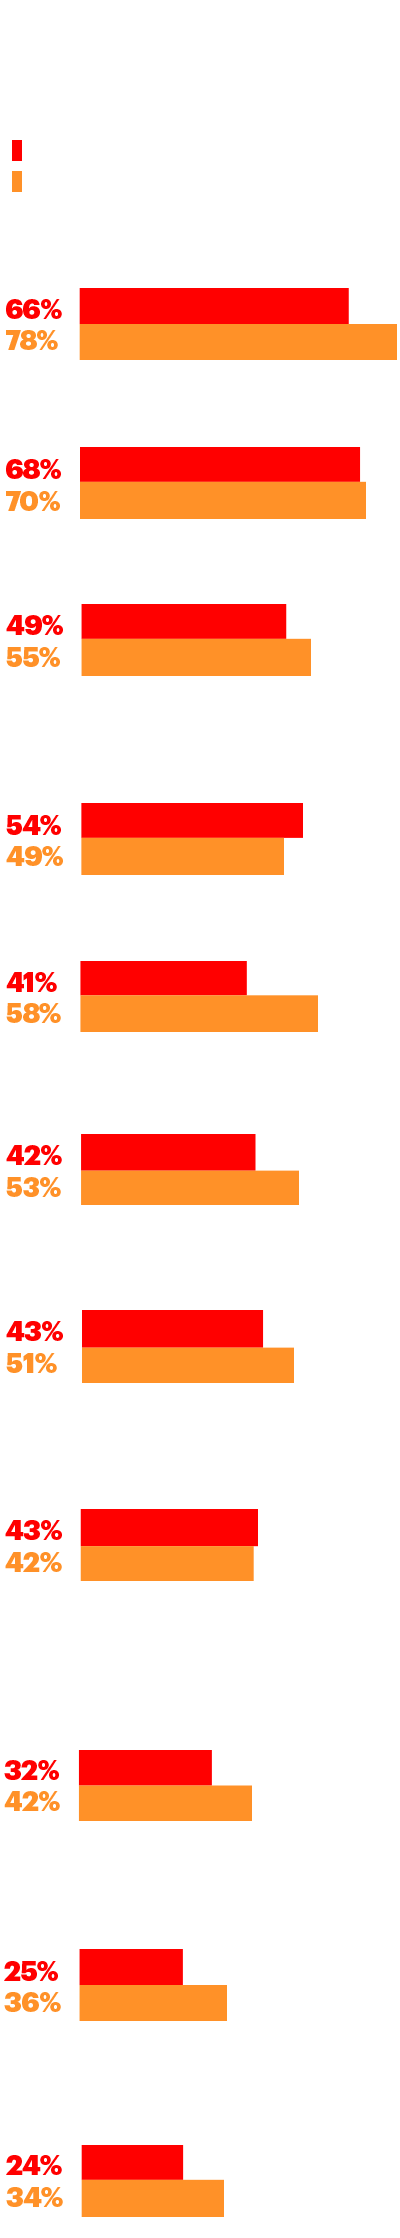 Reasons for increased customer expectations